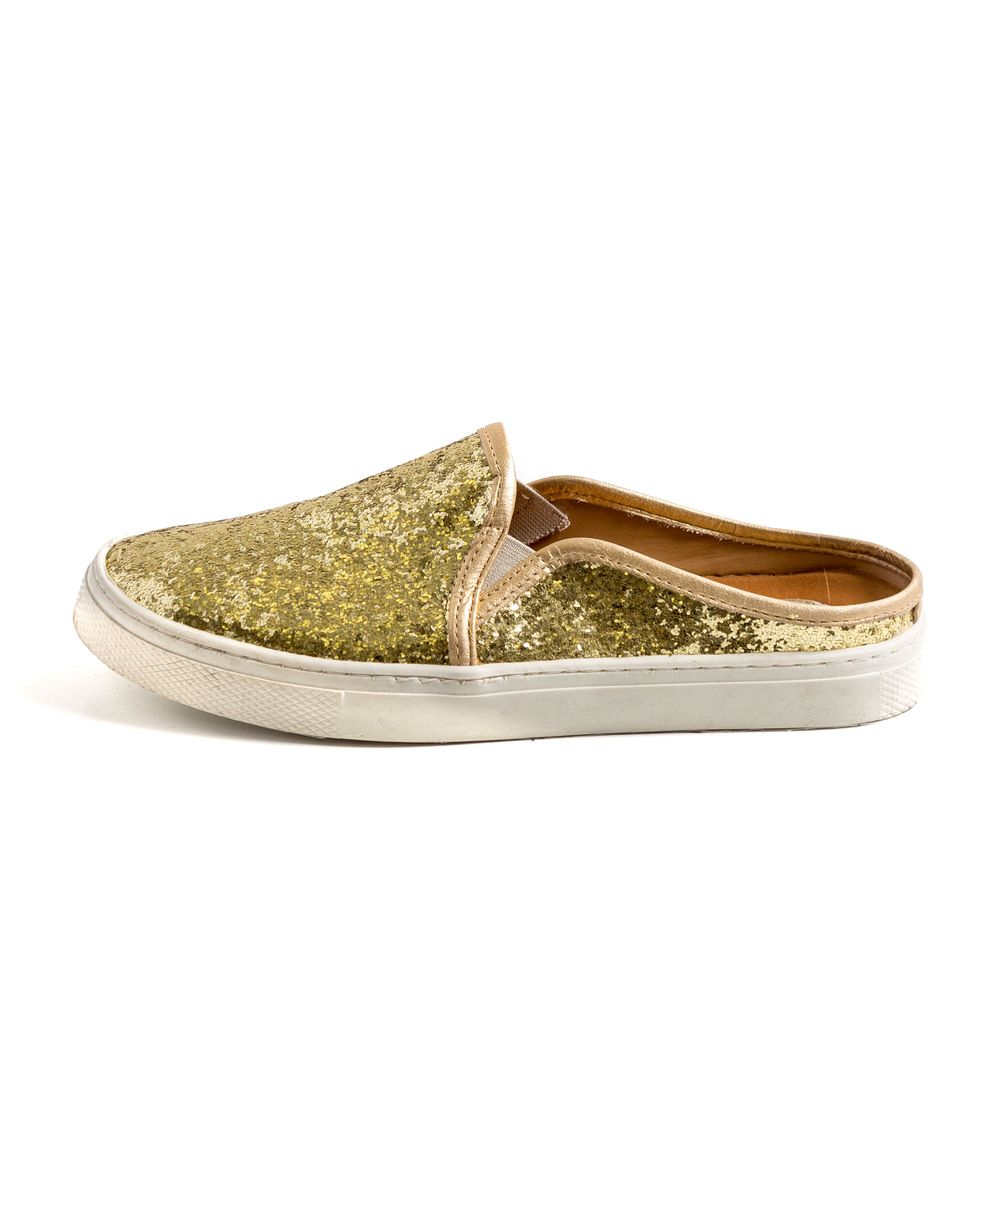 MY-SHOES-SLIP-ON-ABERTO-70460006